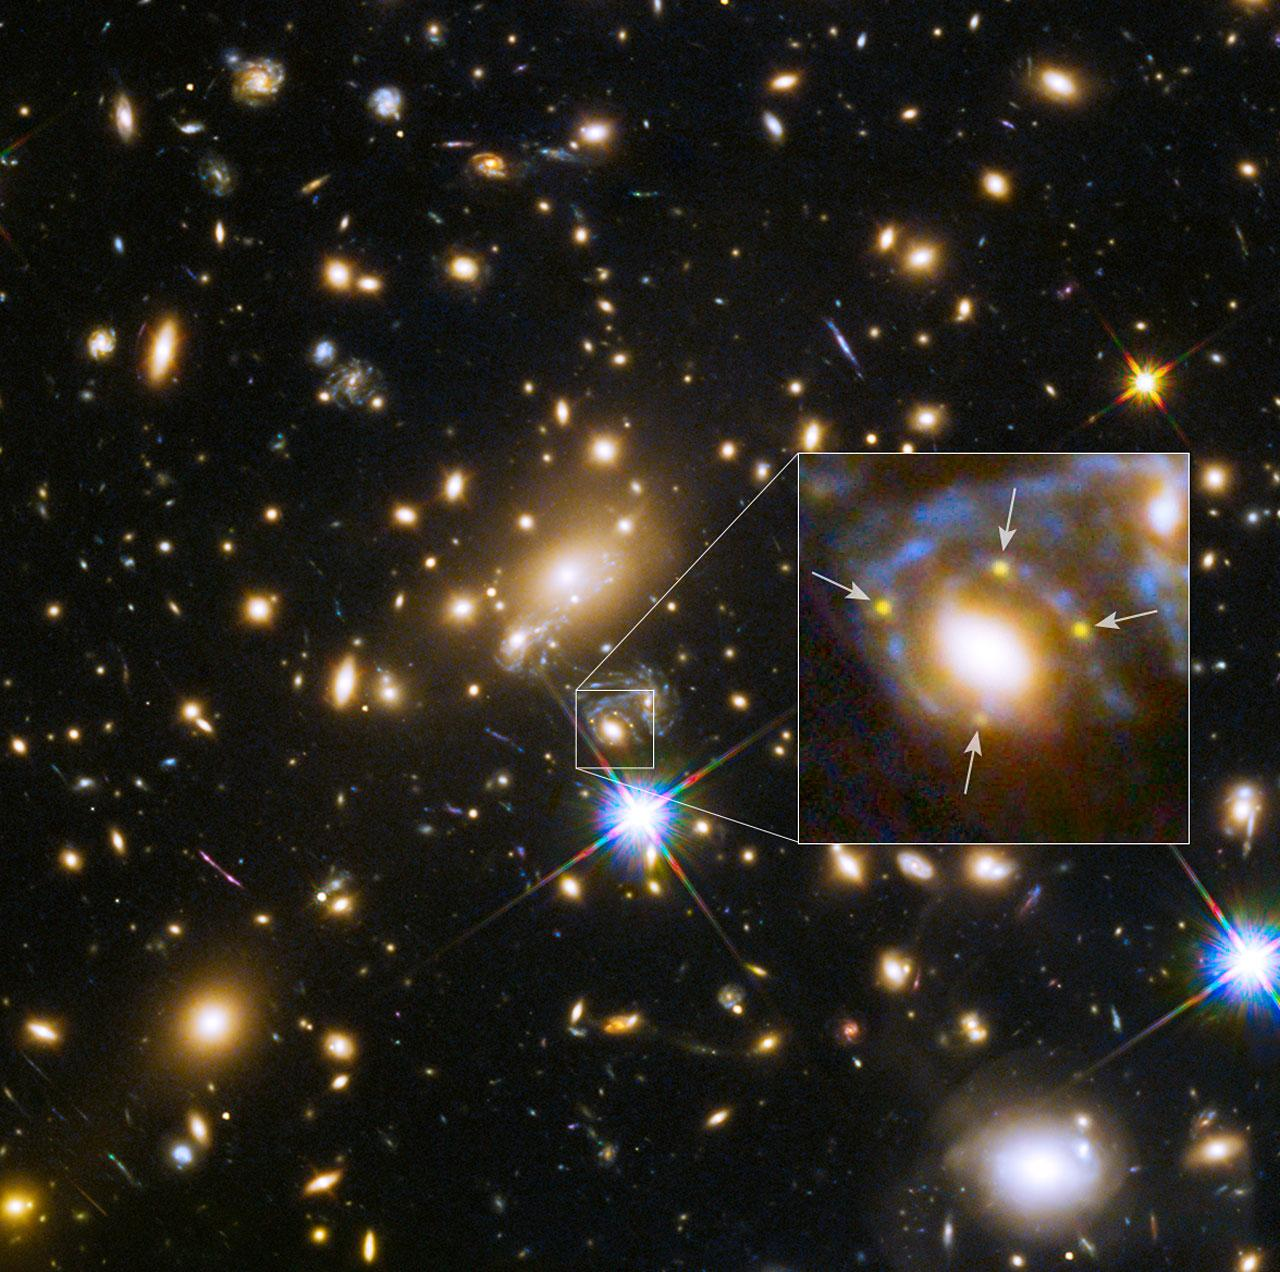 Hubble gave astronomers the rare chance to see the same supernova over and over again